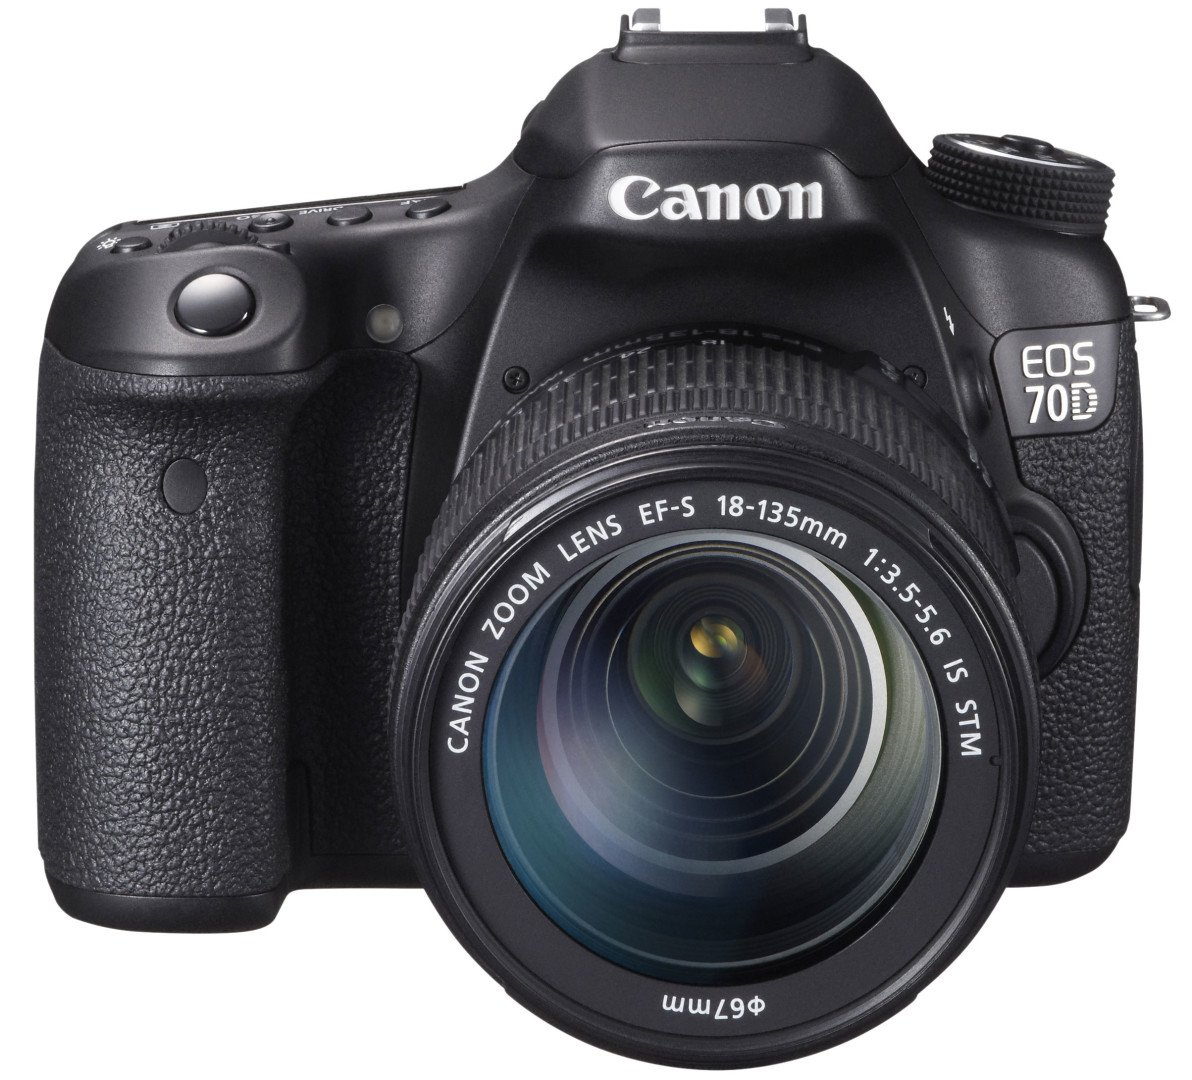 canon eos 70d review cameralabs. Black Bedroom Furniture Sets. Home Design Ideas